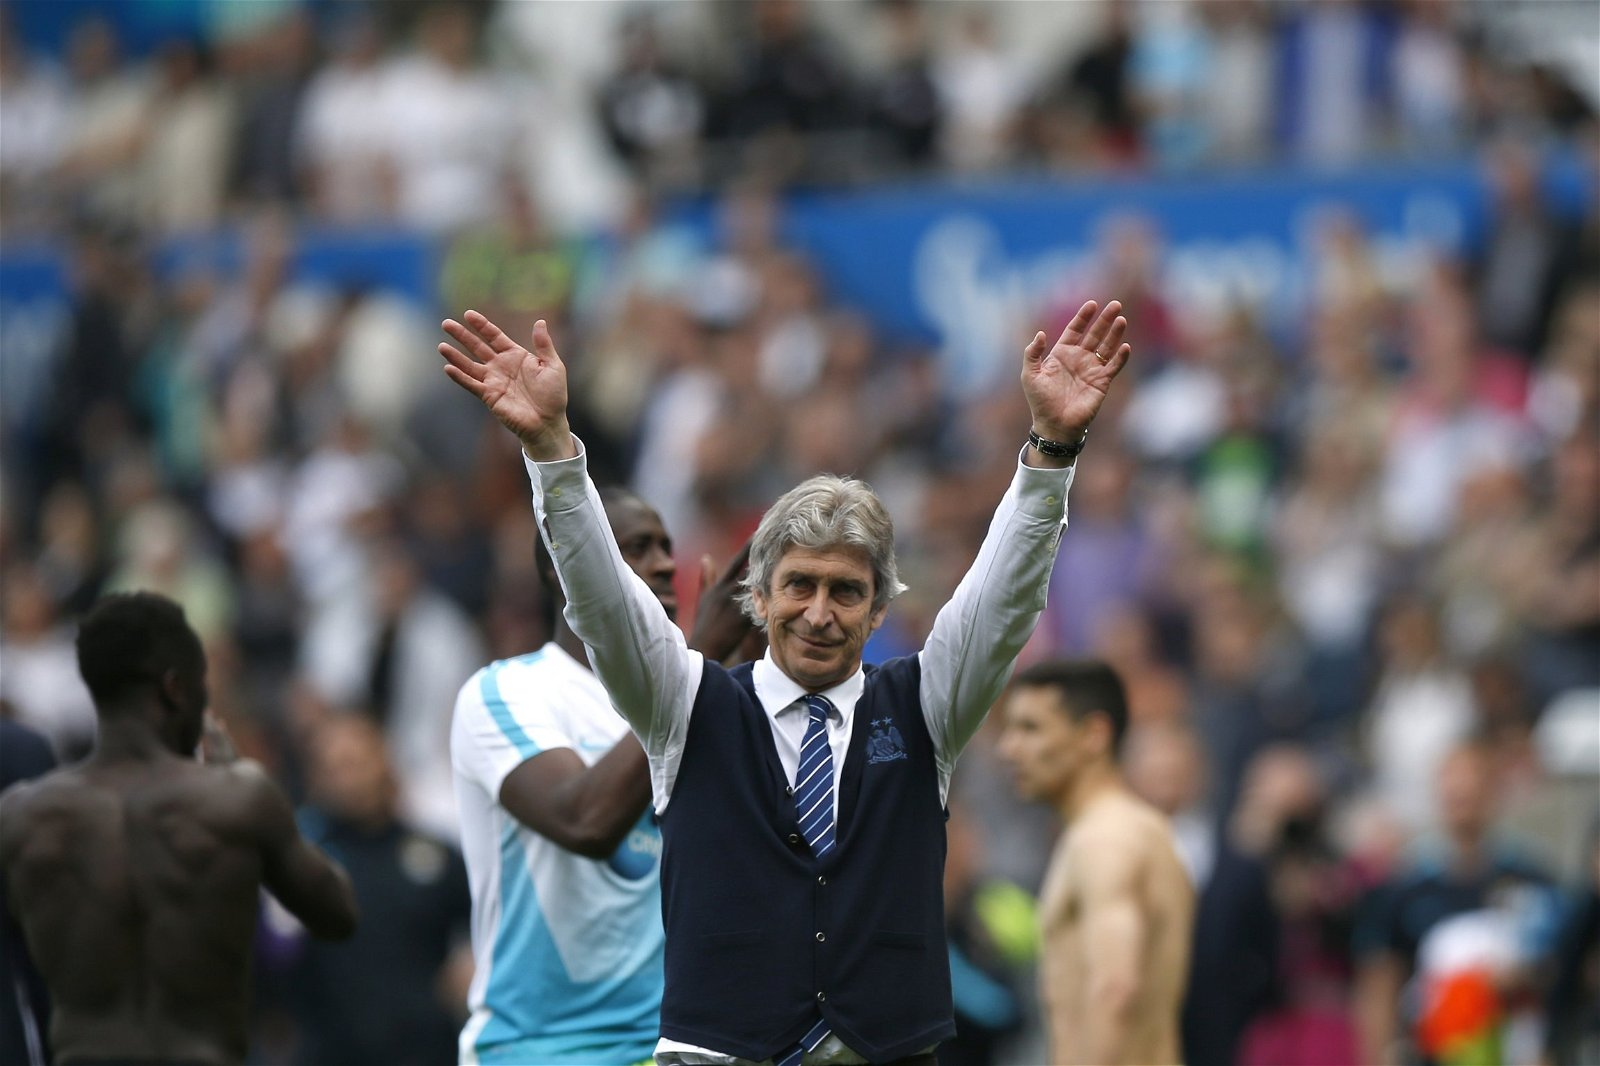 Manuel Pellegrini says goodbye to Manchester City fans